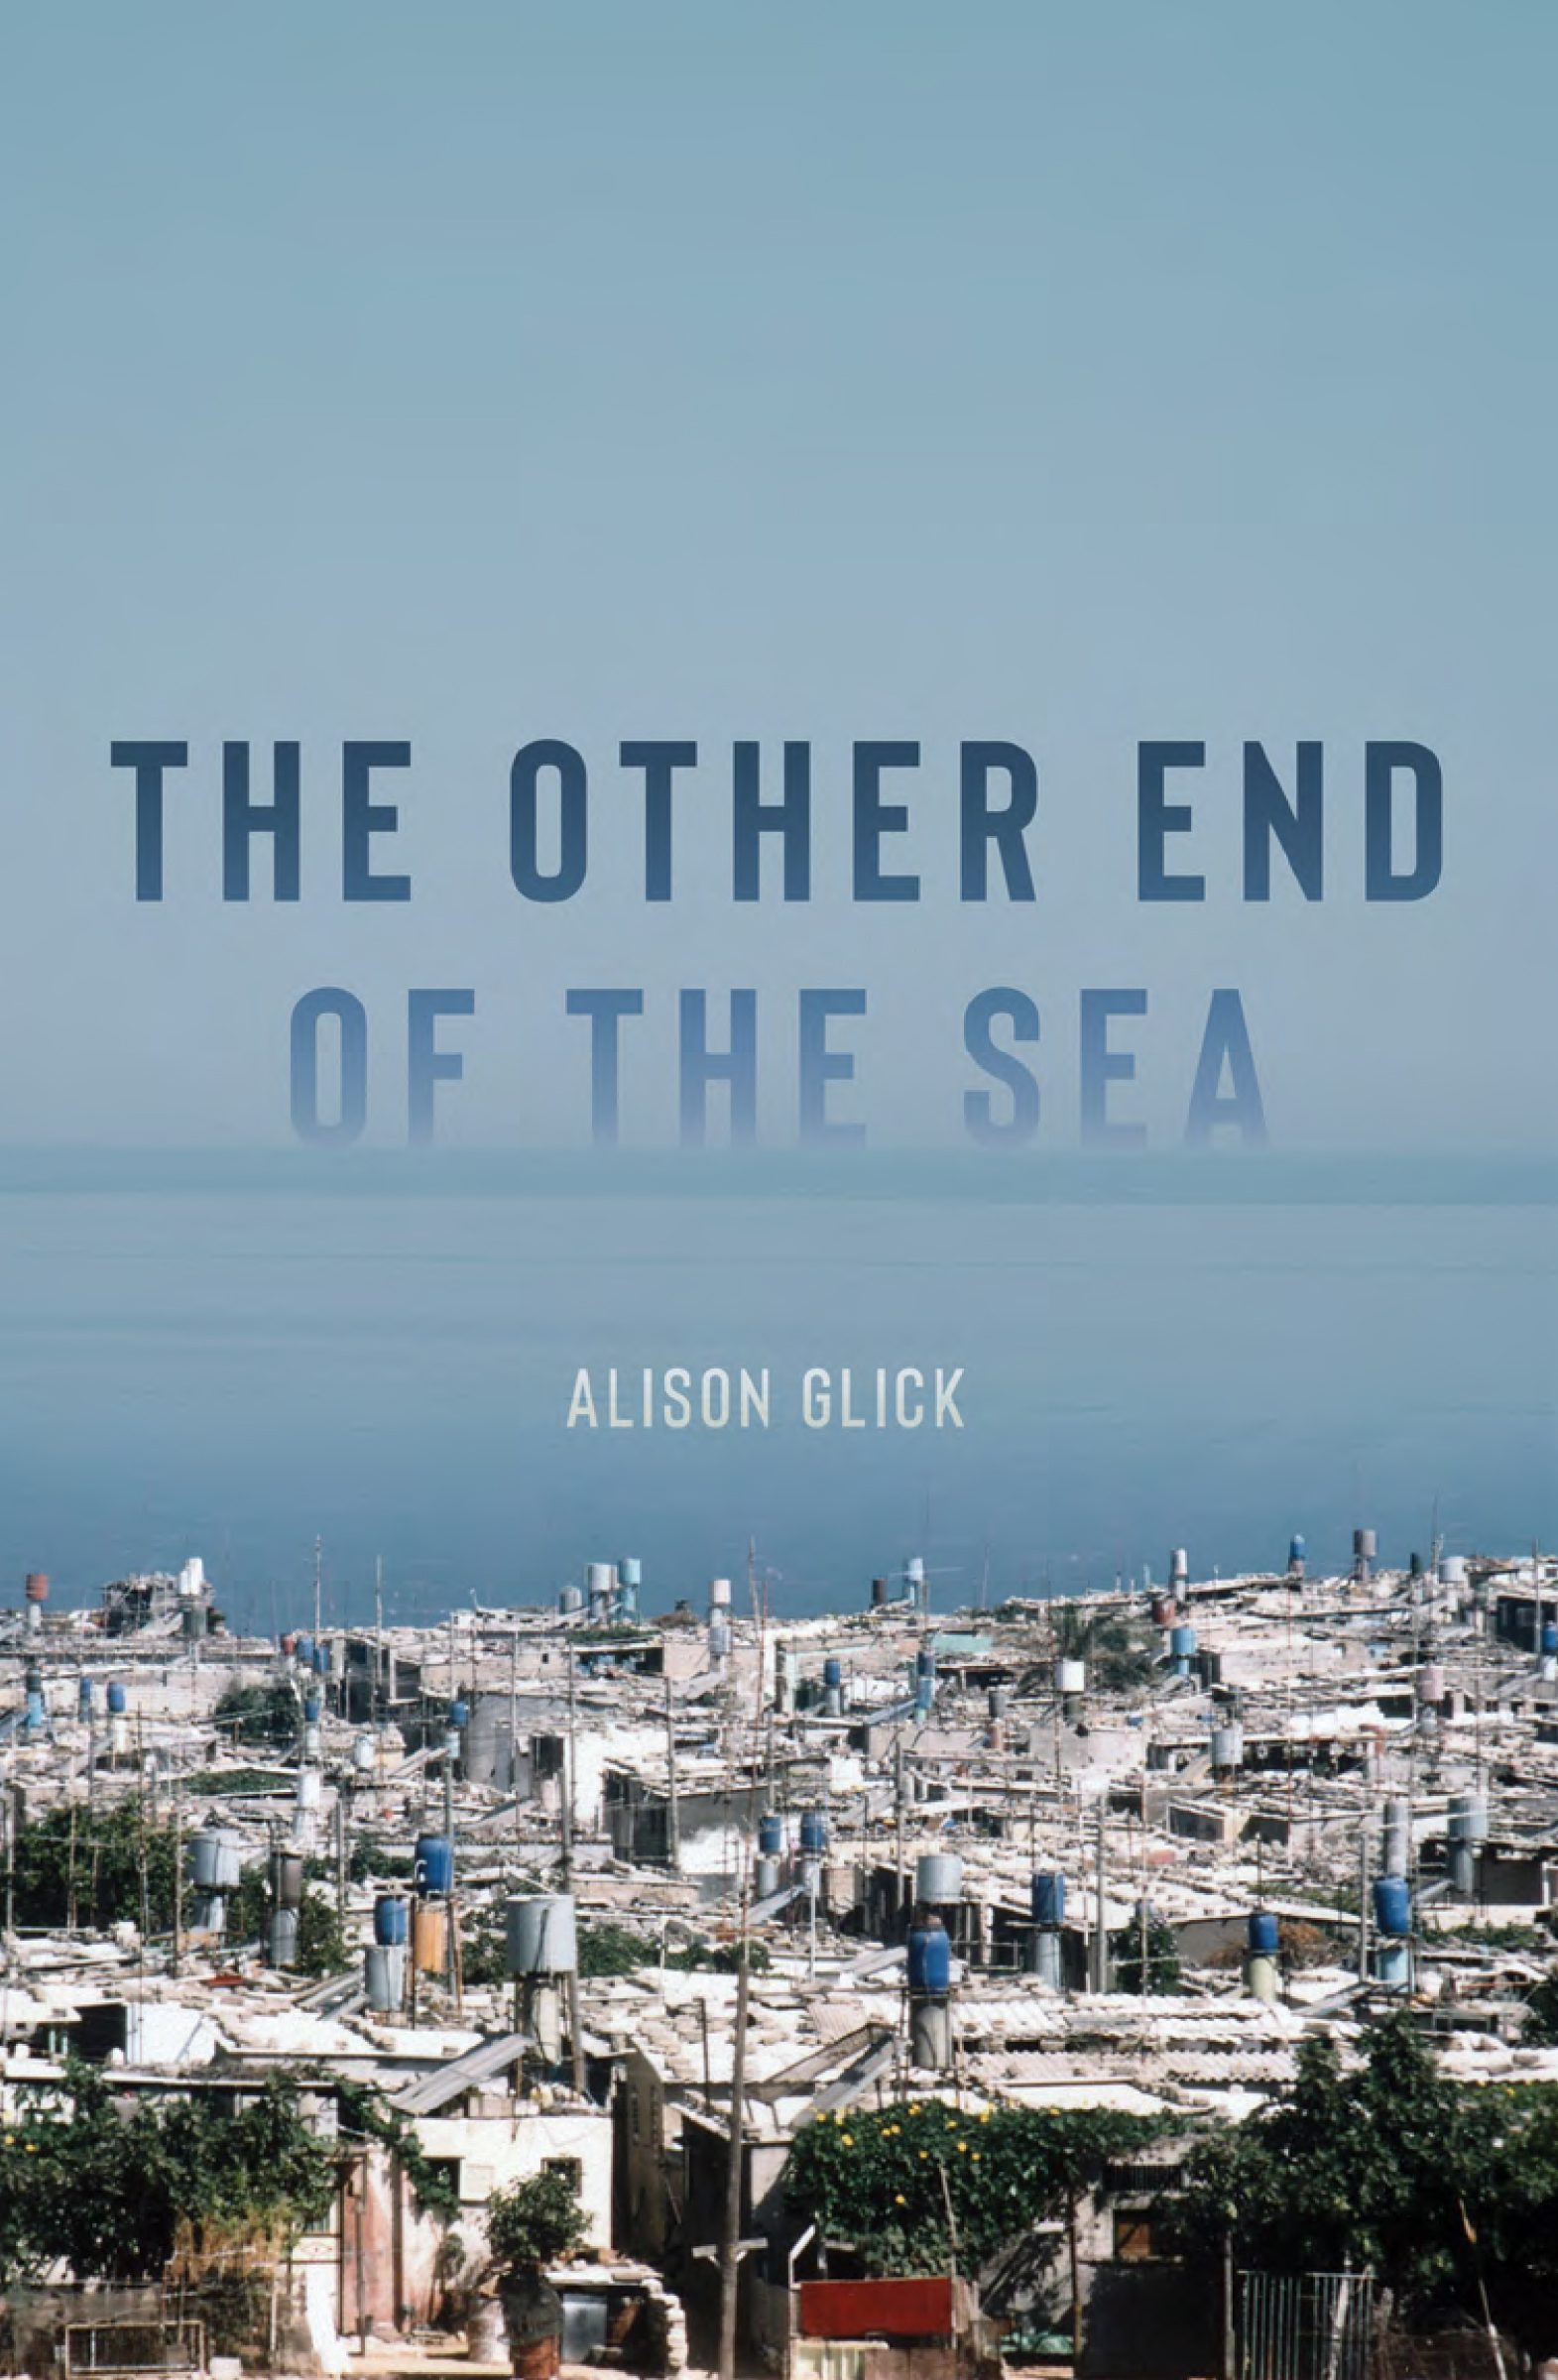 The Other End of the Sea